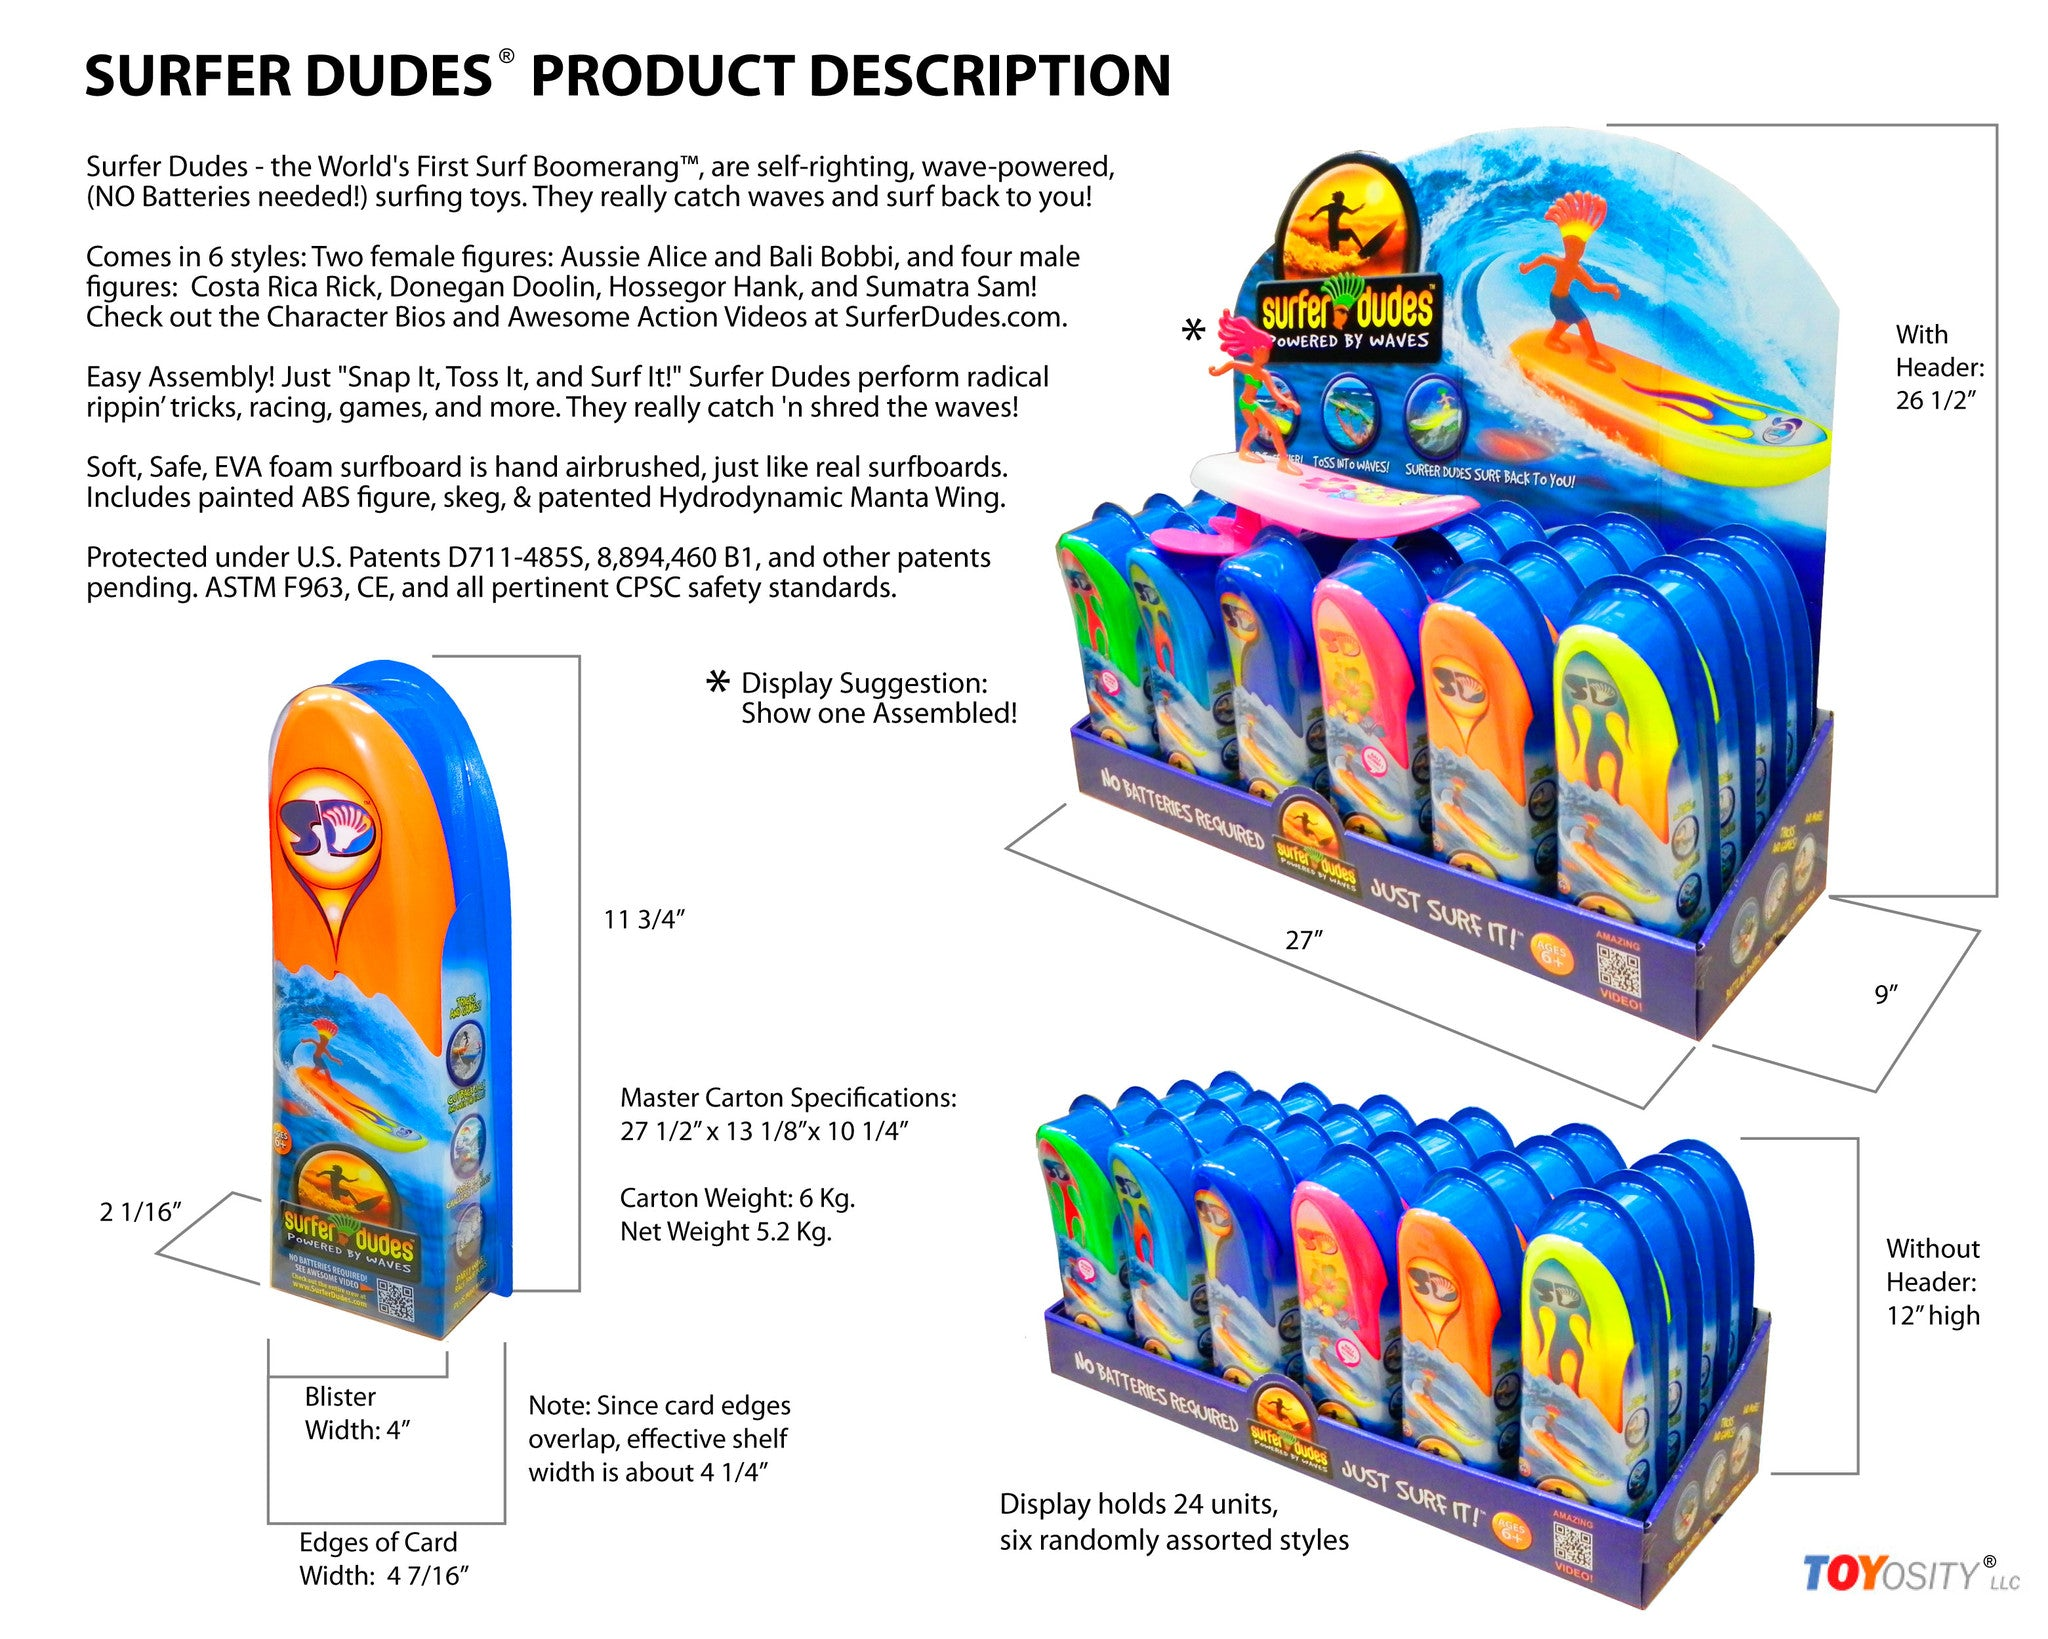 Surfer Dudes® display standard assortment